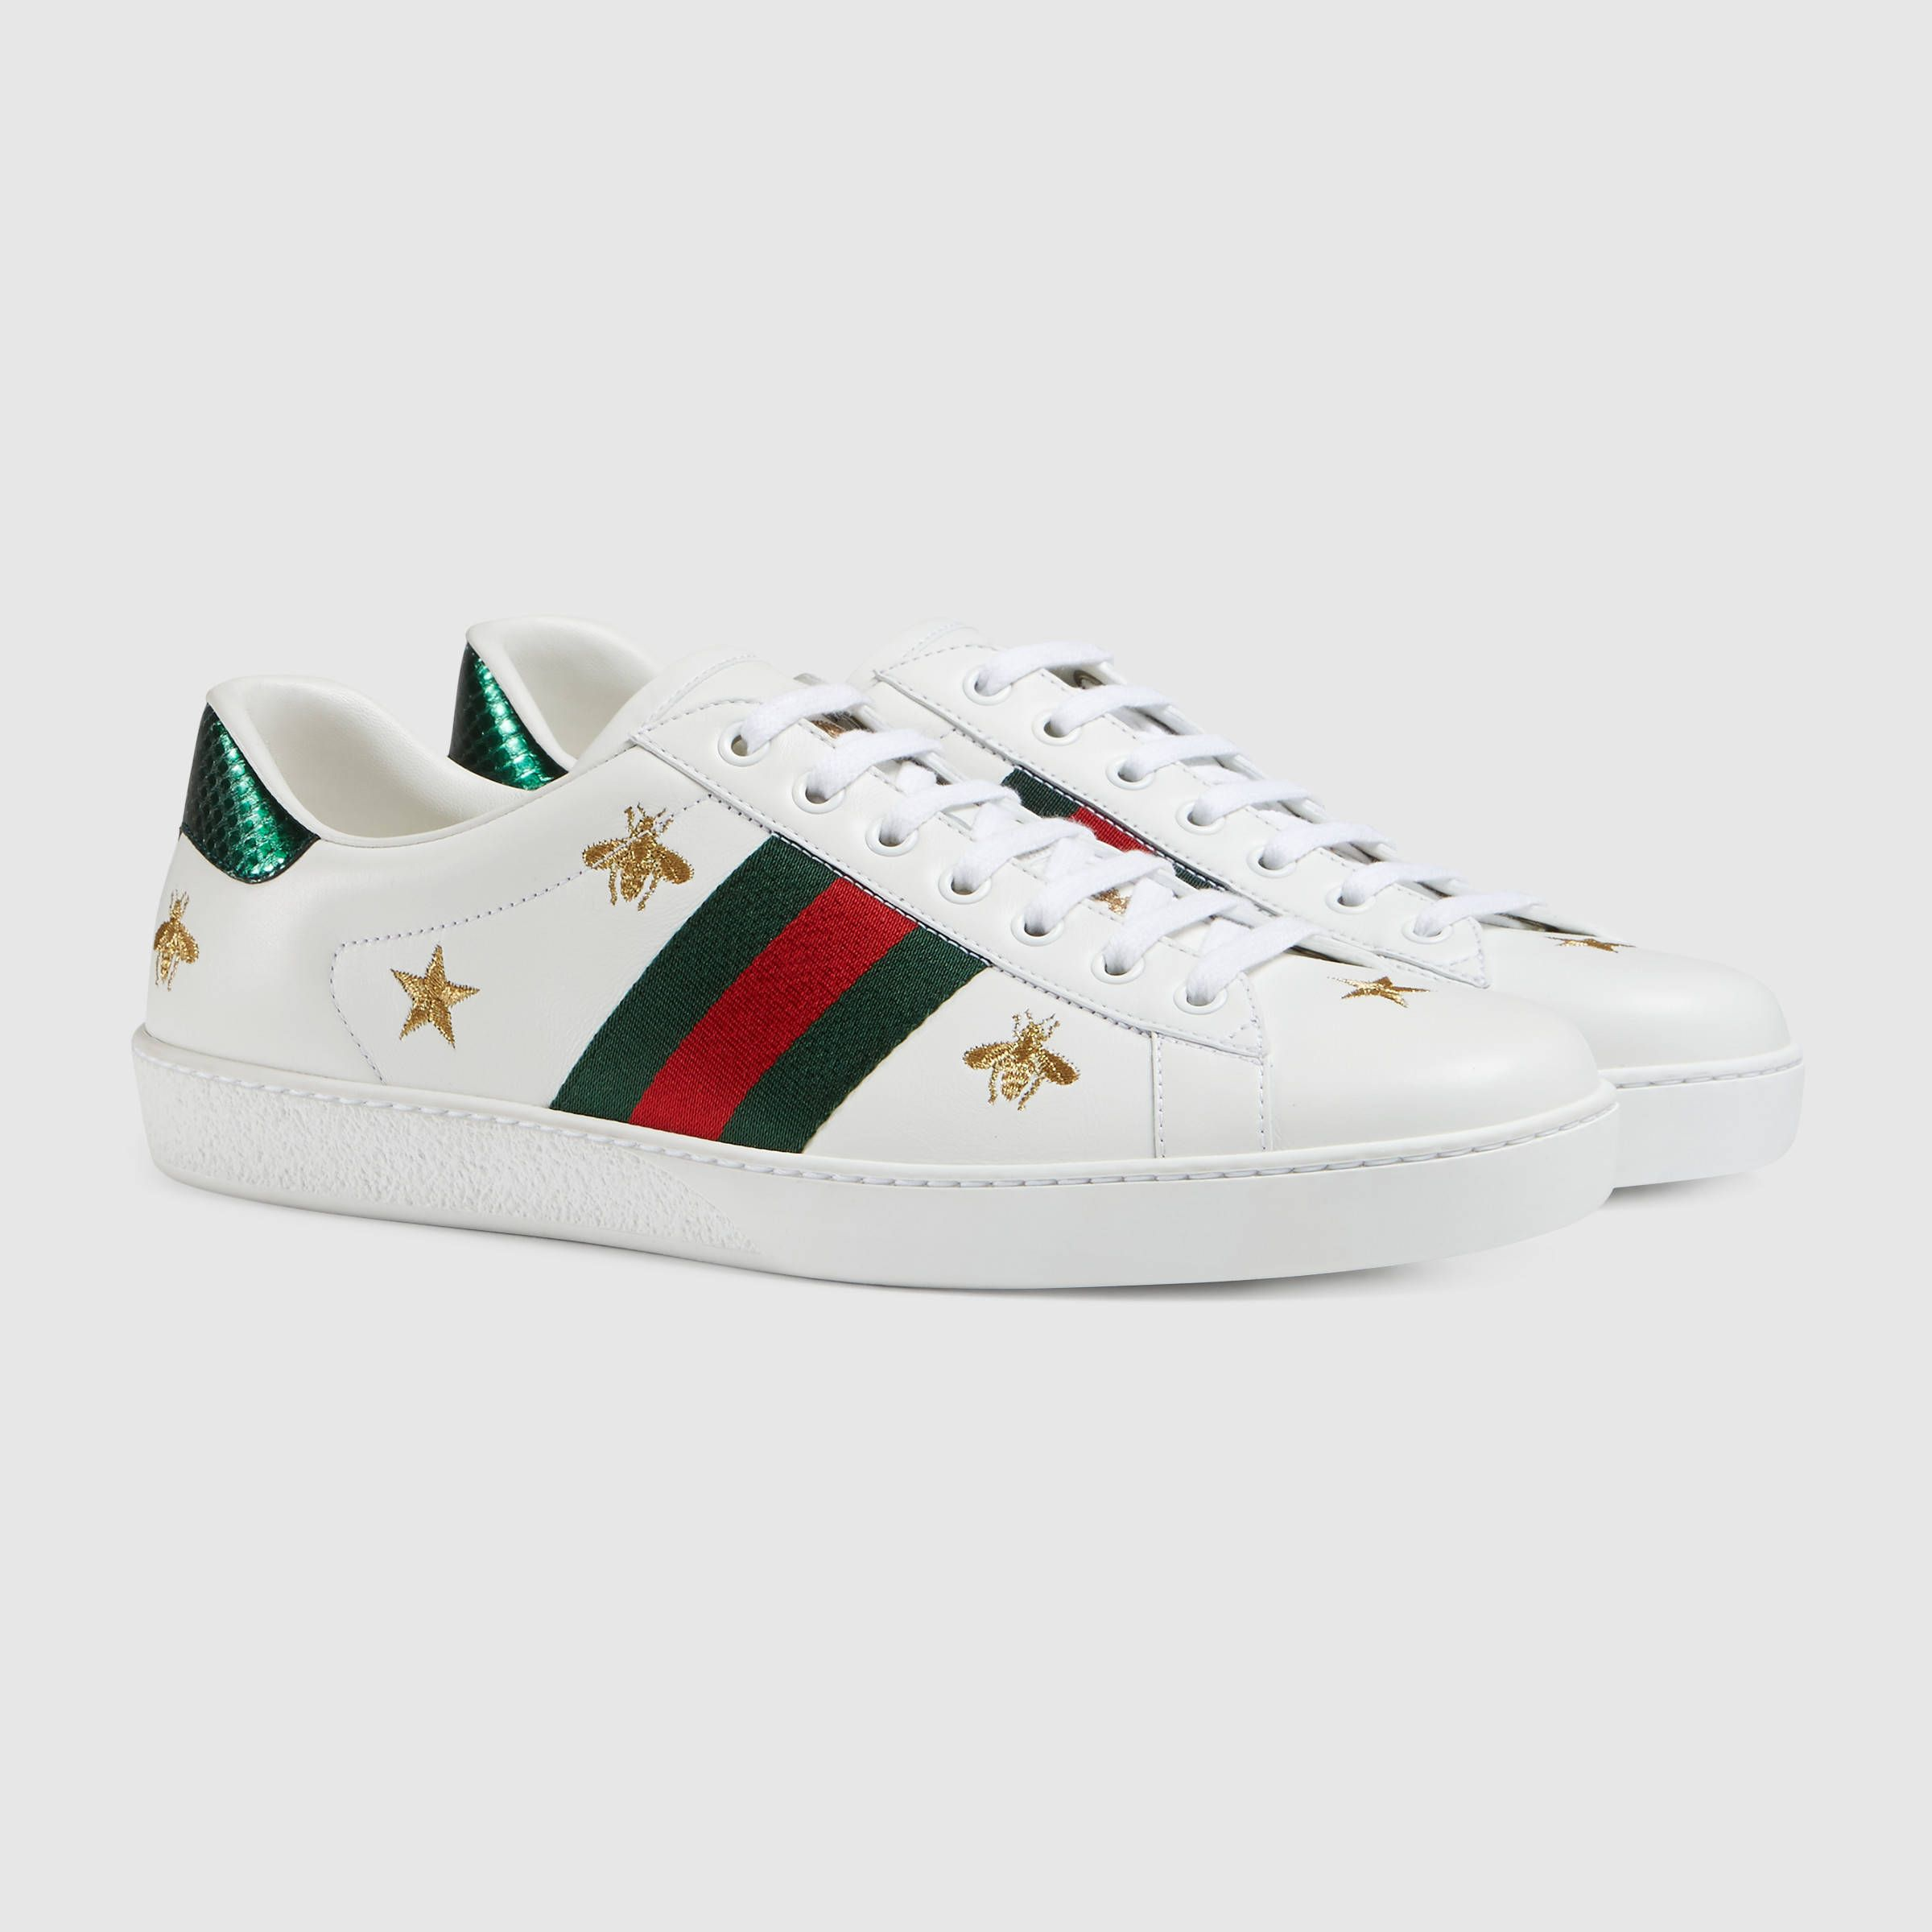 Ace embroidered sneaker   Sneakers Shoes   Sneakers, Gucci, Shoes 6060bbbcd32d